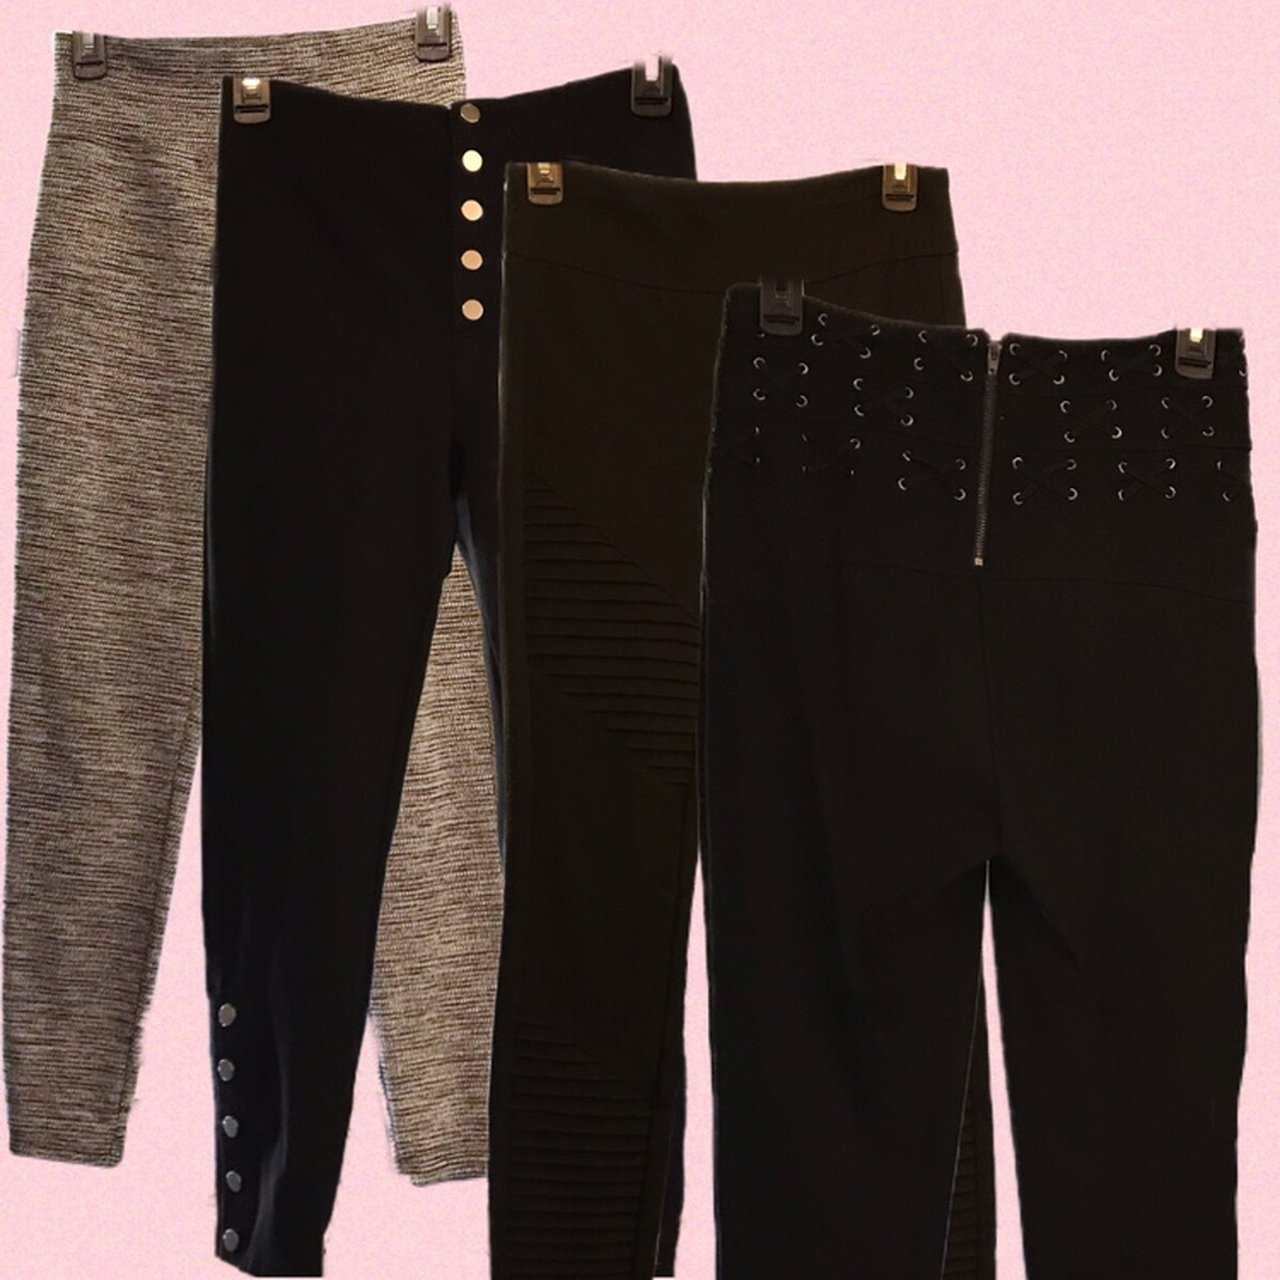 36ecffd1e3 BUNDLE of 4 pairs of leggings! They are all high waisted